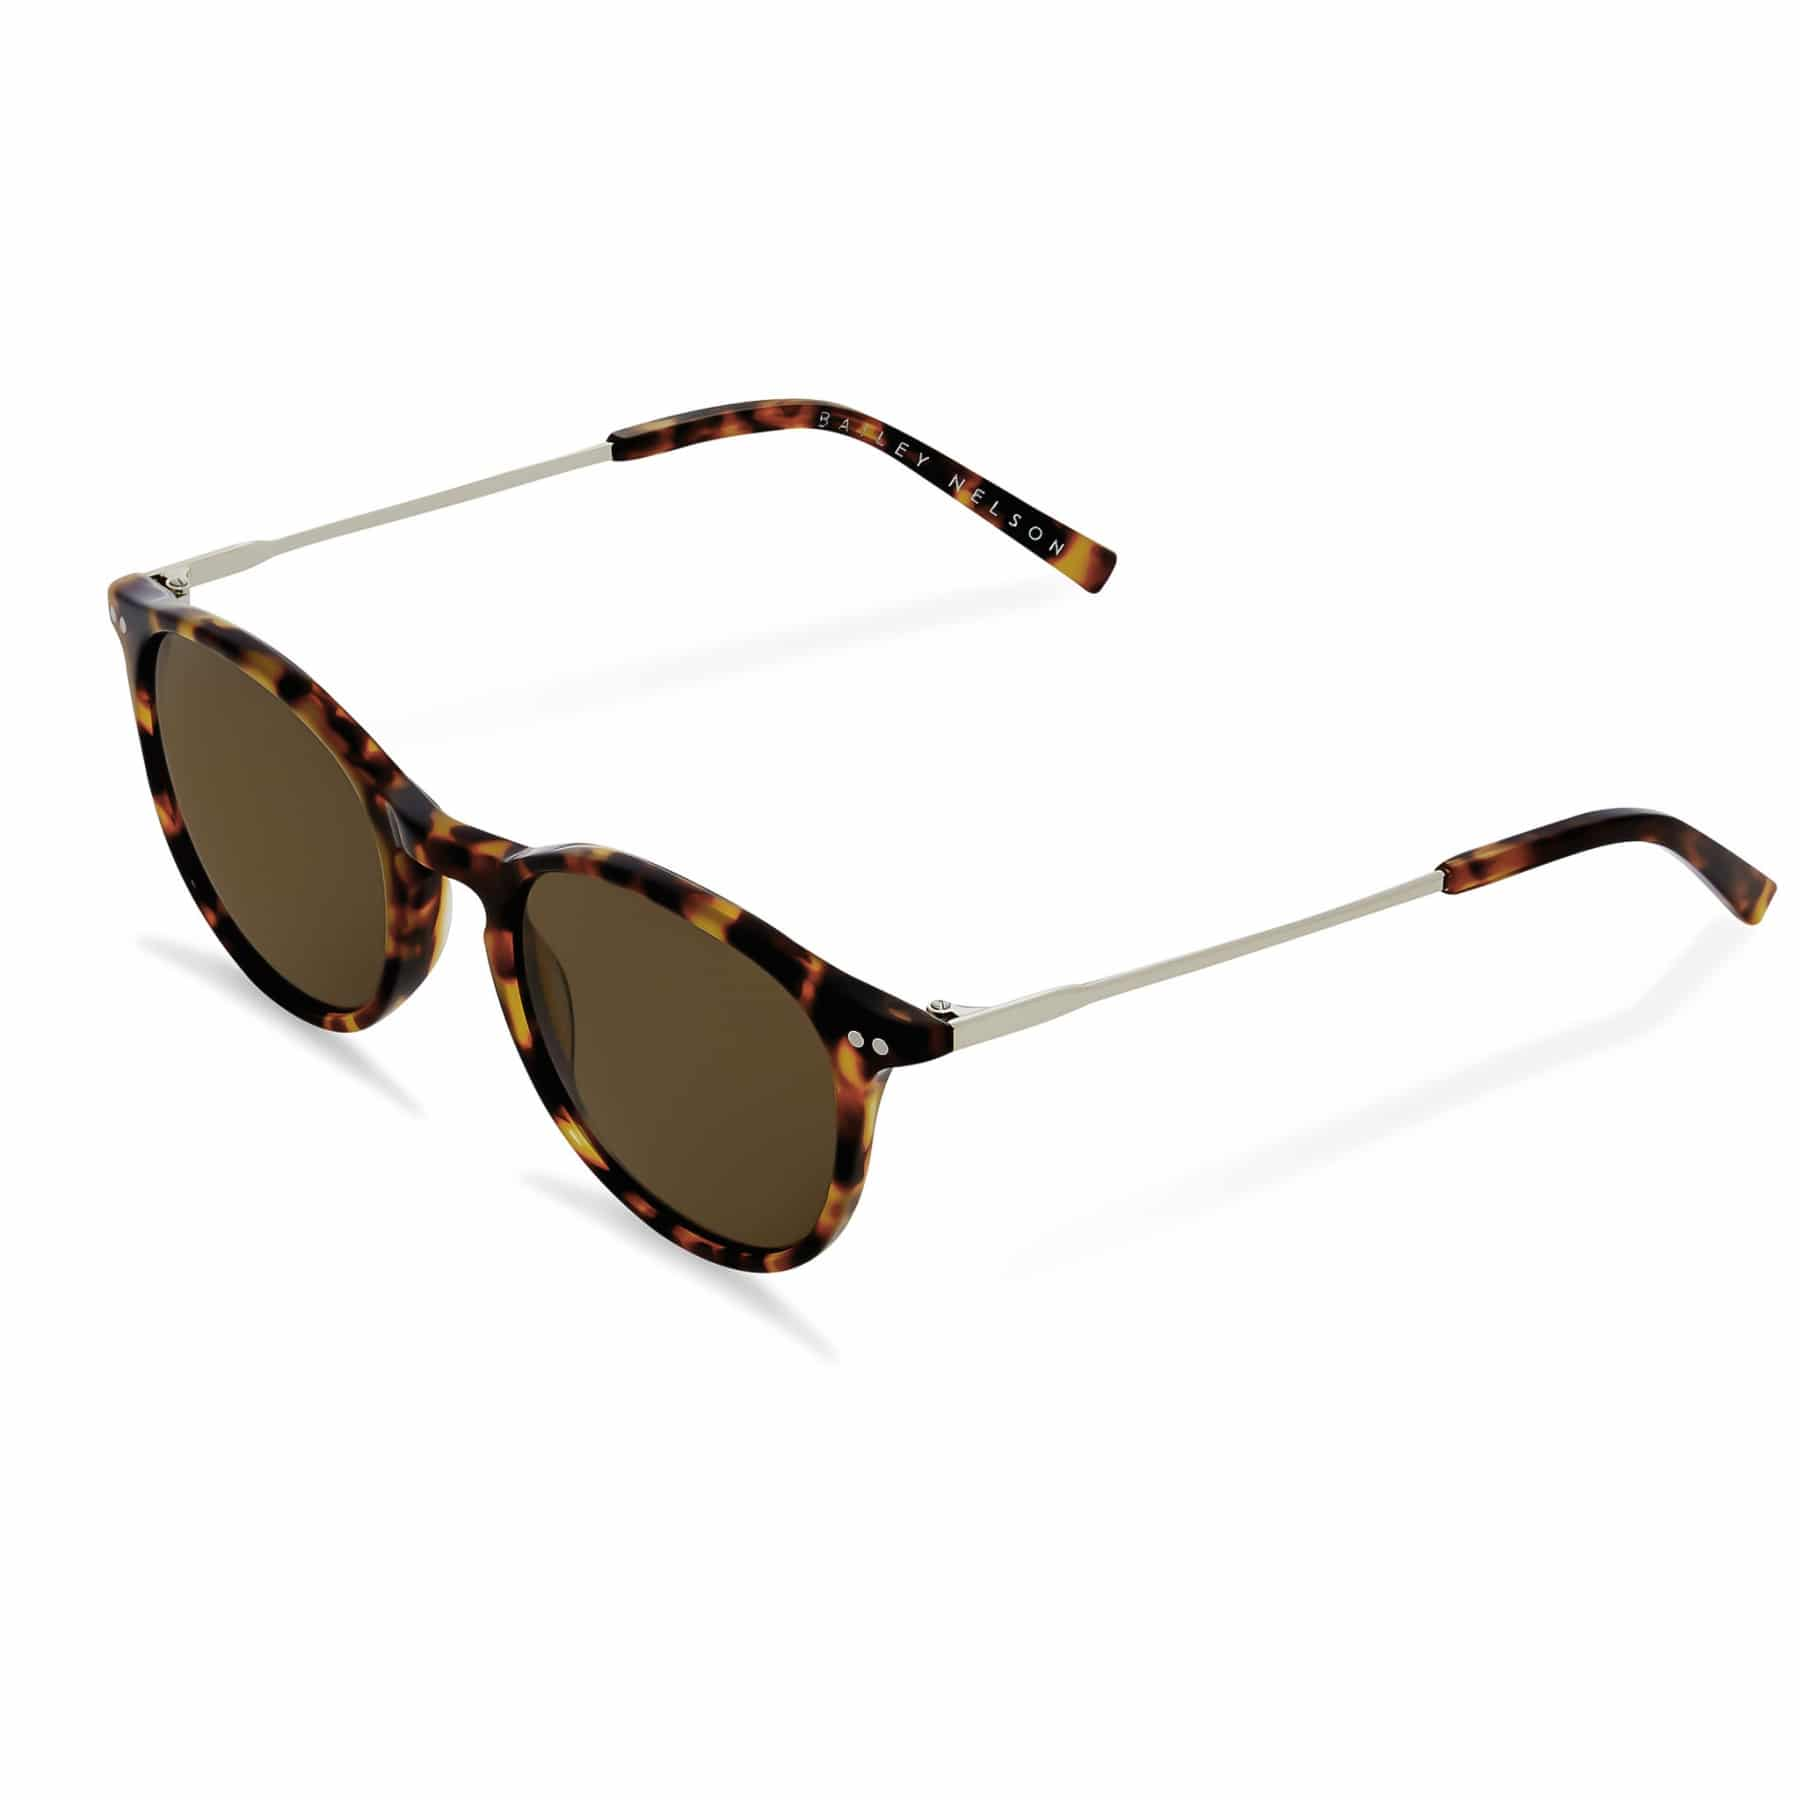 4d2943c2a922 Polarized Glasses Specsavers - Shabooms